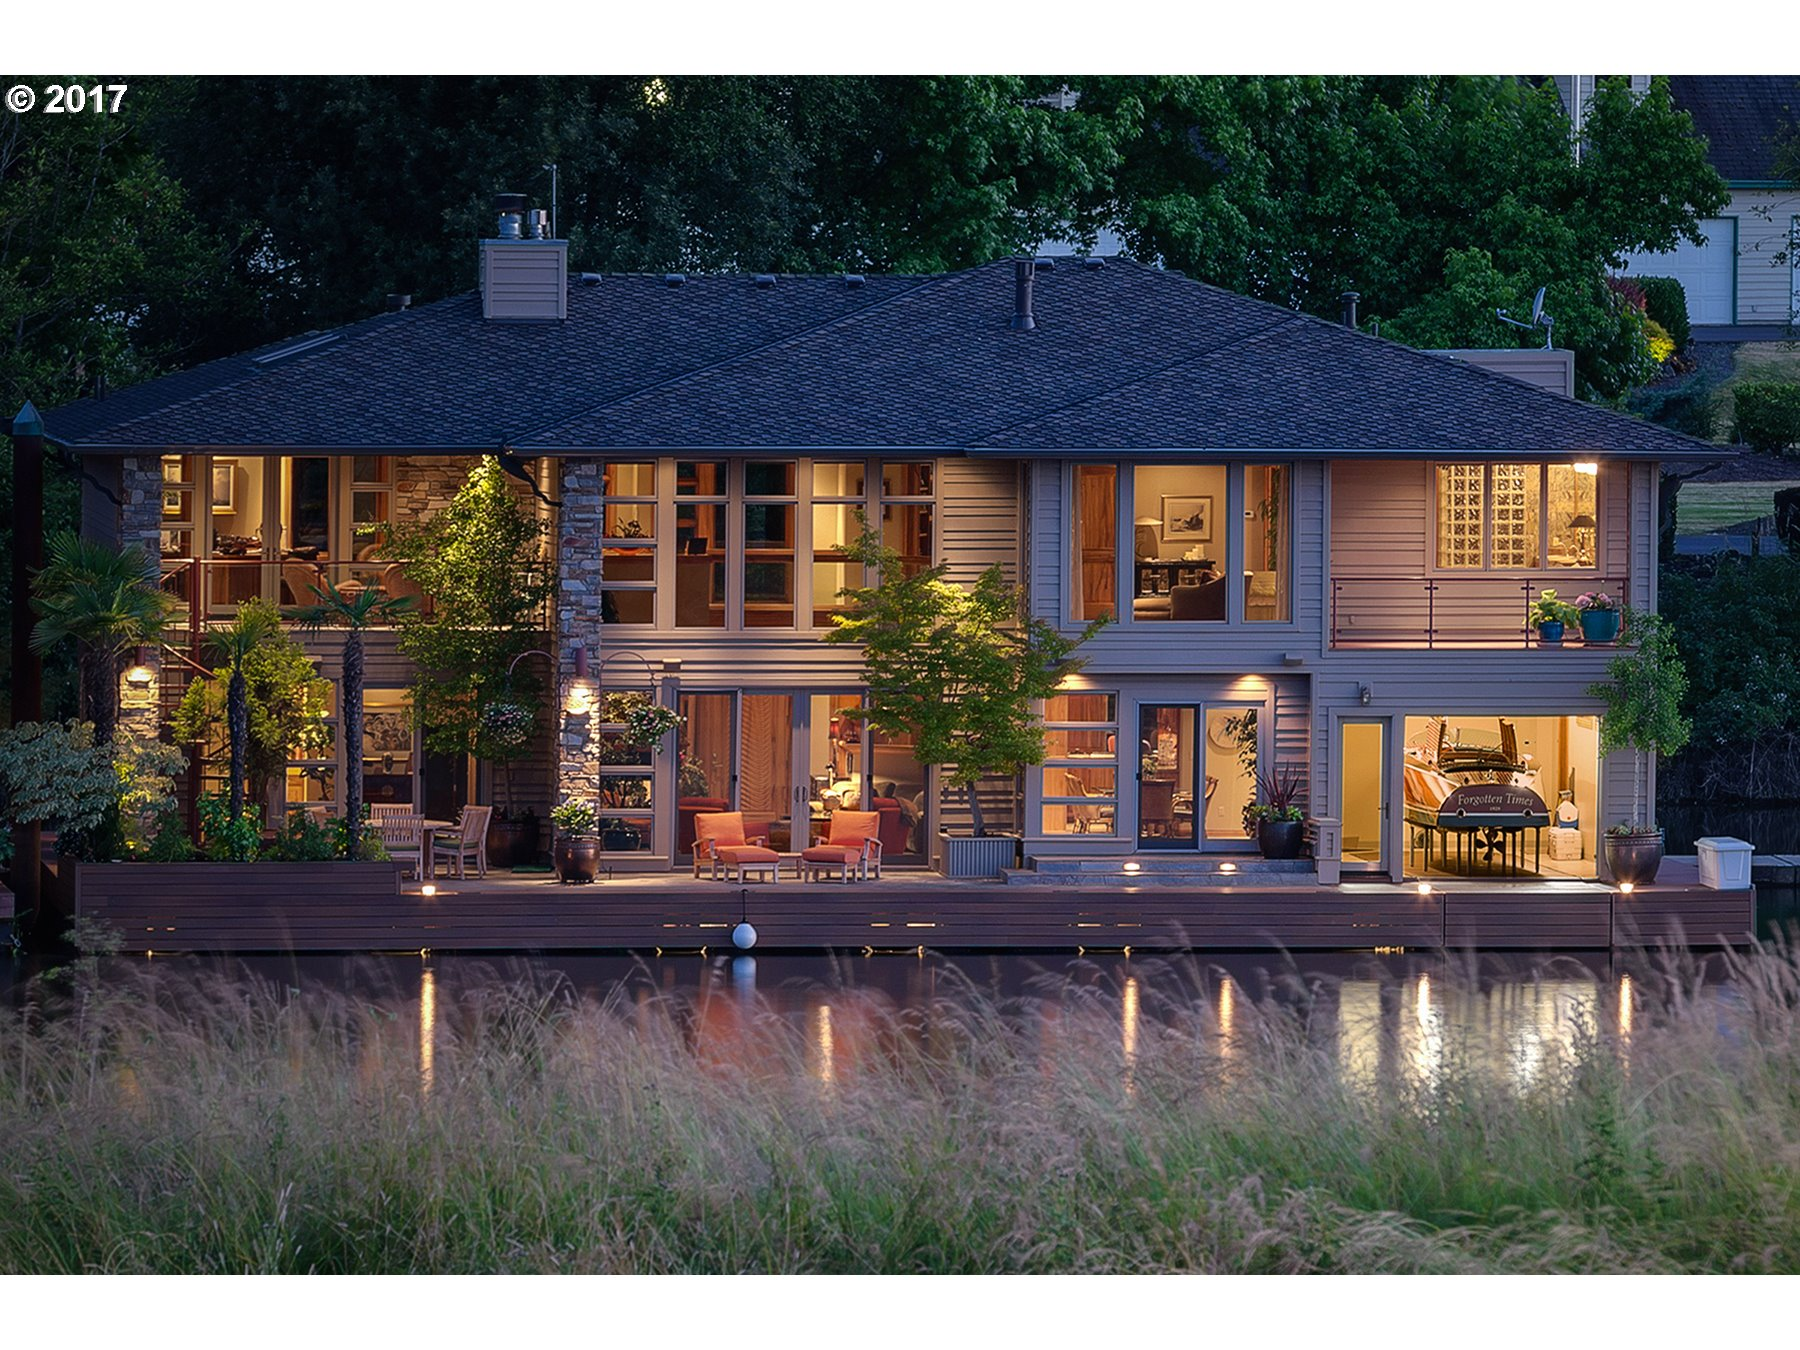 Floating Homes For Sale In Portland Oregon Floating Home: floating homes portland